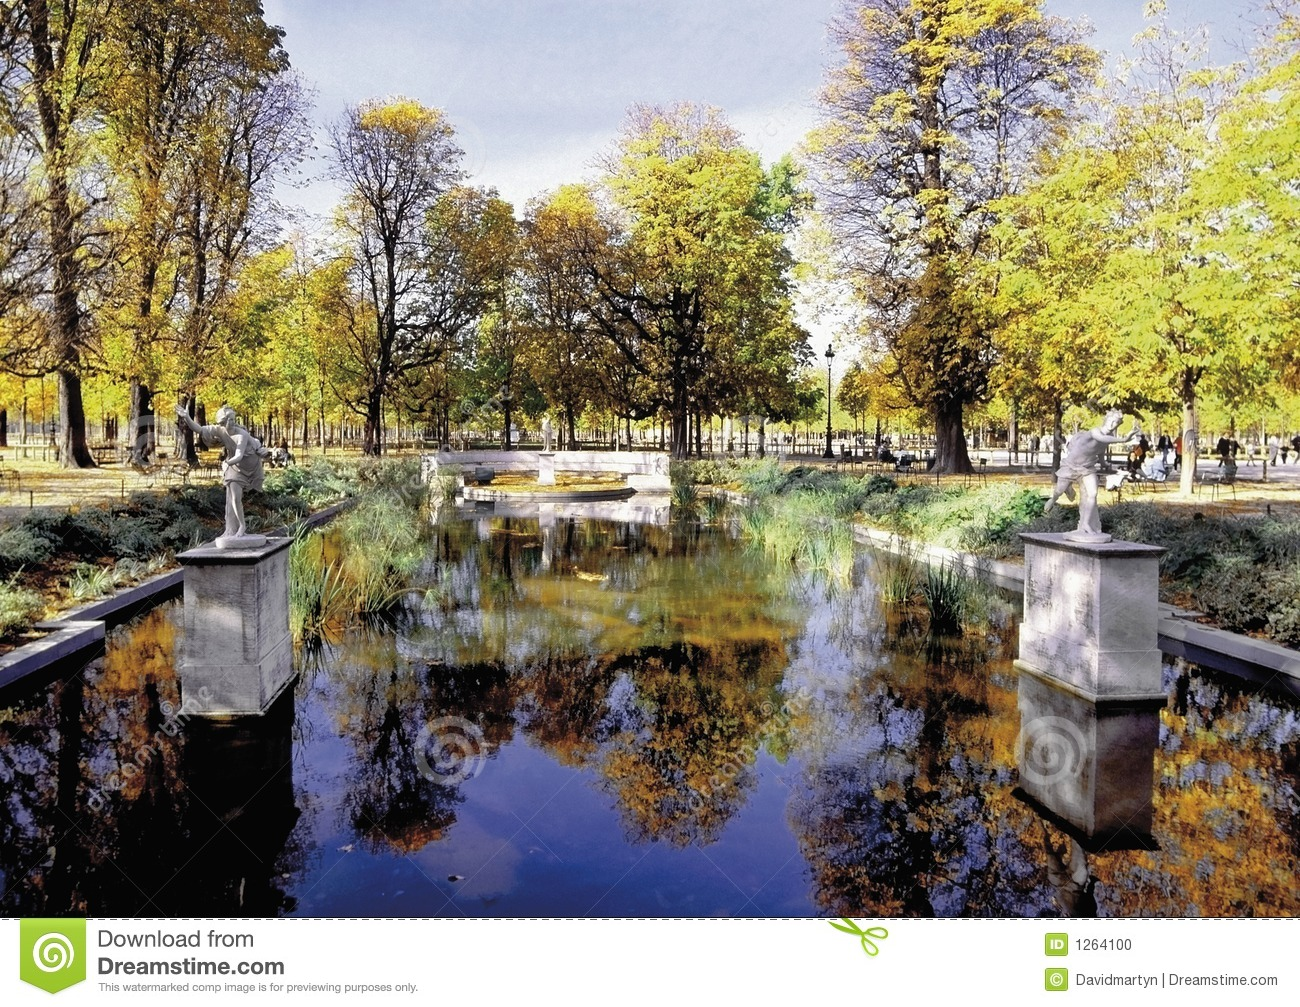 Jardin des tuileries paris france stock photo image 1264100 for Jardin je france